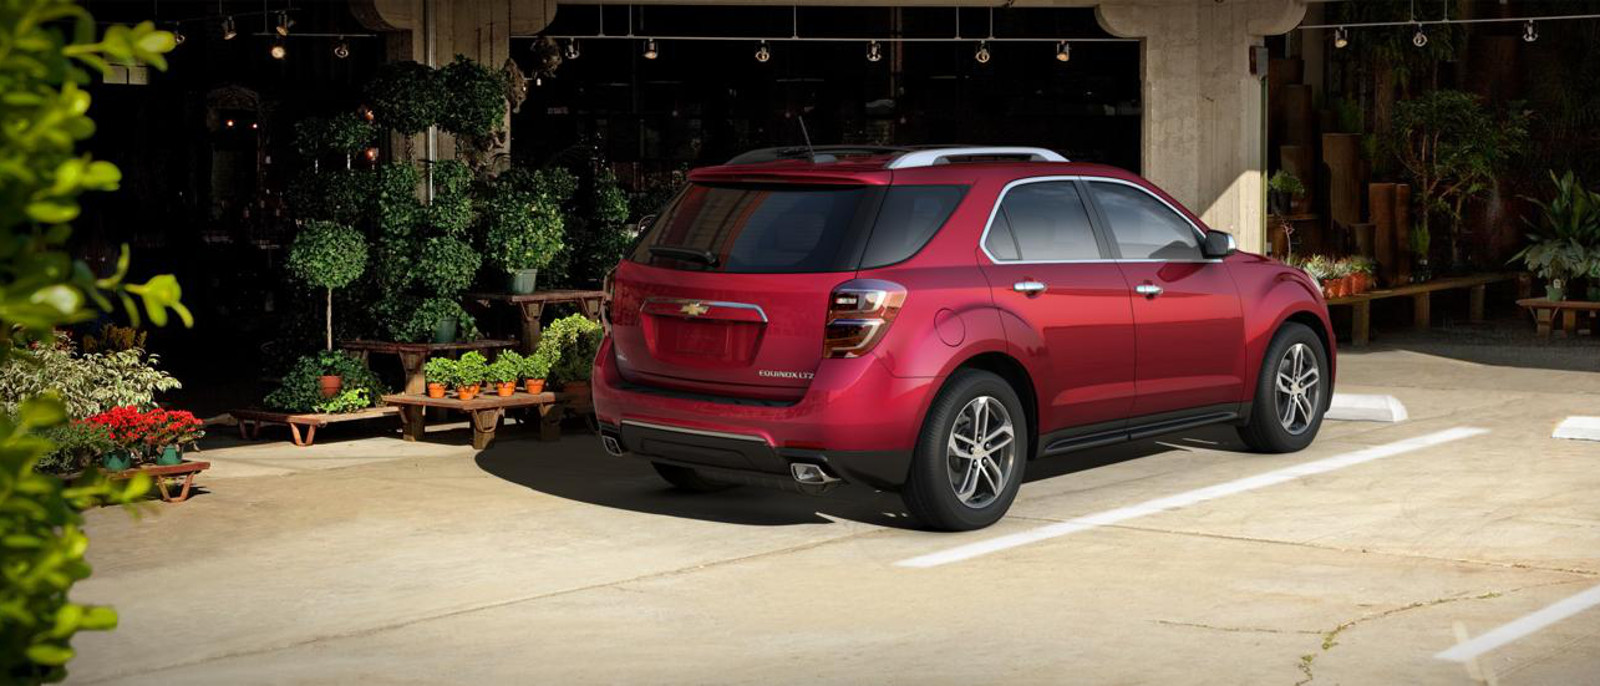 2015 Chevy Equinox Rear Exterior